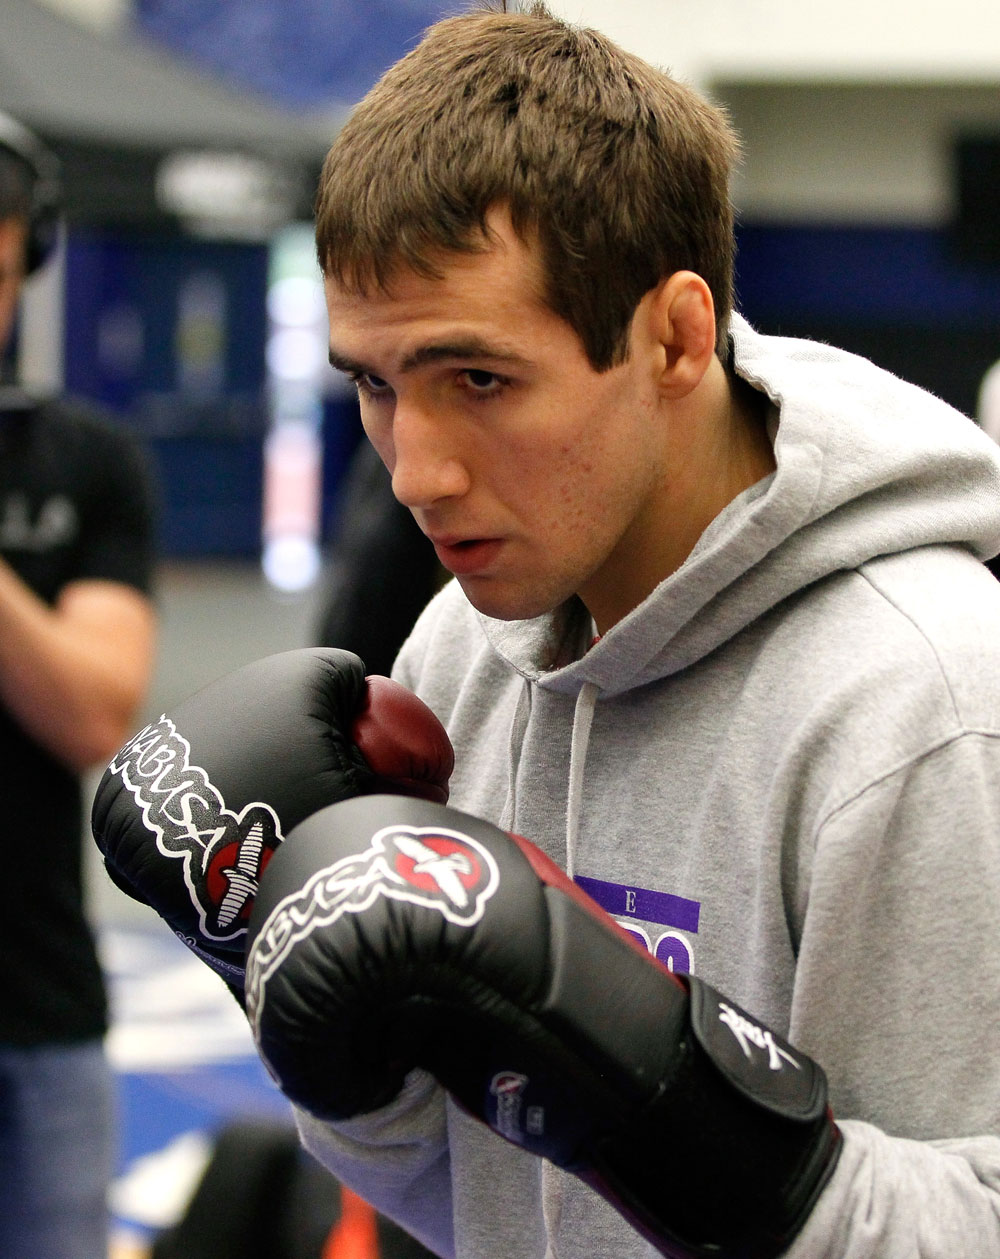 ATLANTA, GA - APRIL 19:  Rory MacDonald of Canada works out for the media during UFC 145 open workouts at GSU Sports Arena on April 19, 2012 in Atlanta, Georgia.  (Photo by Kevin C. Cox/Zuffa LLC/Zuffa LLC via Getty Images)